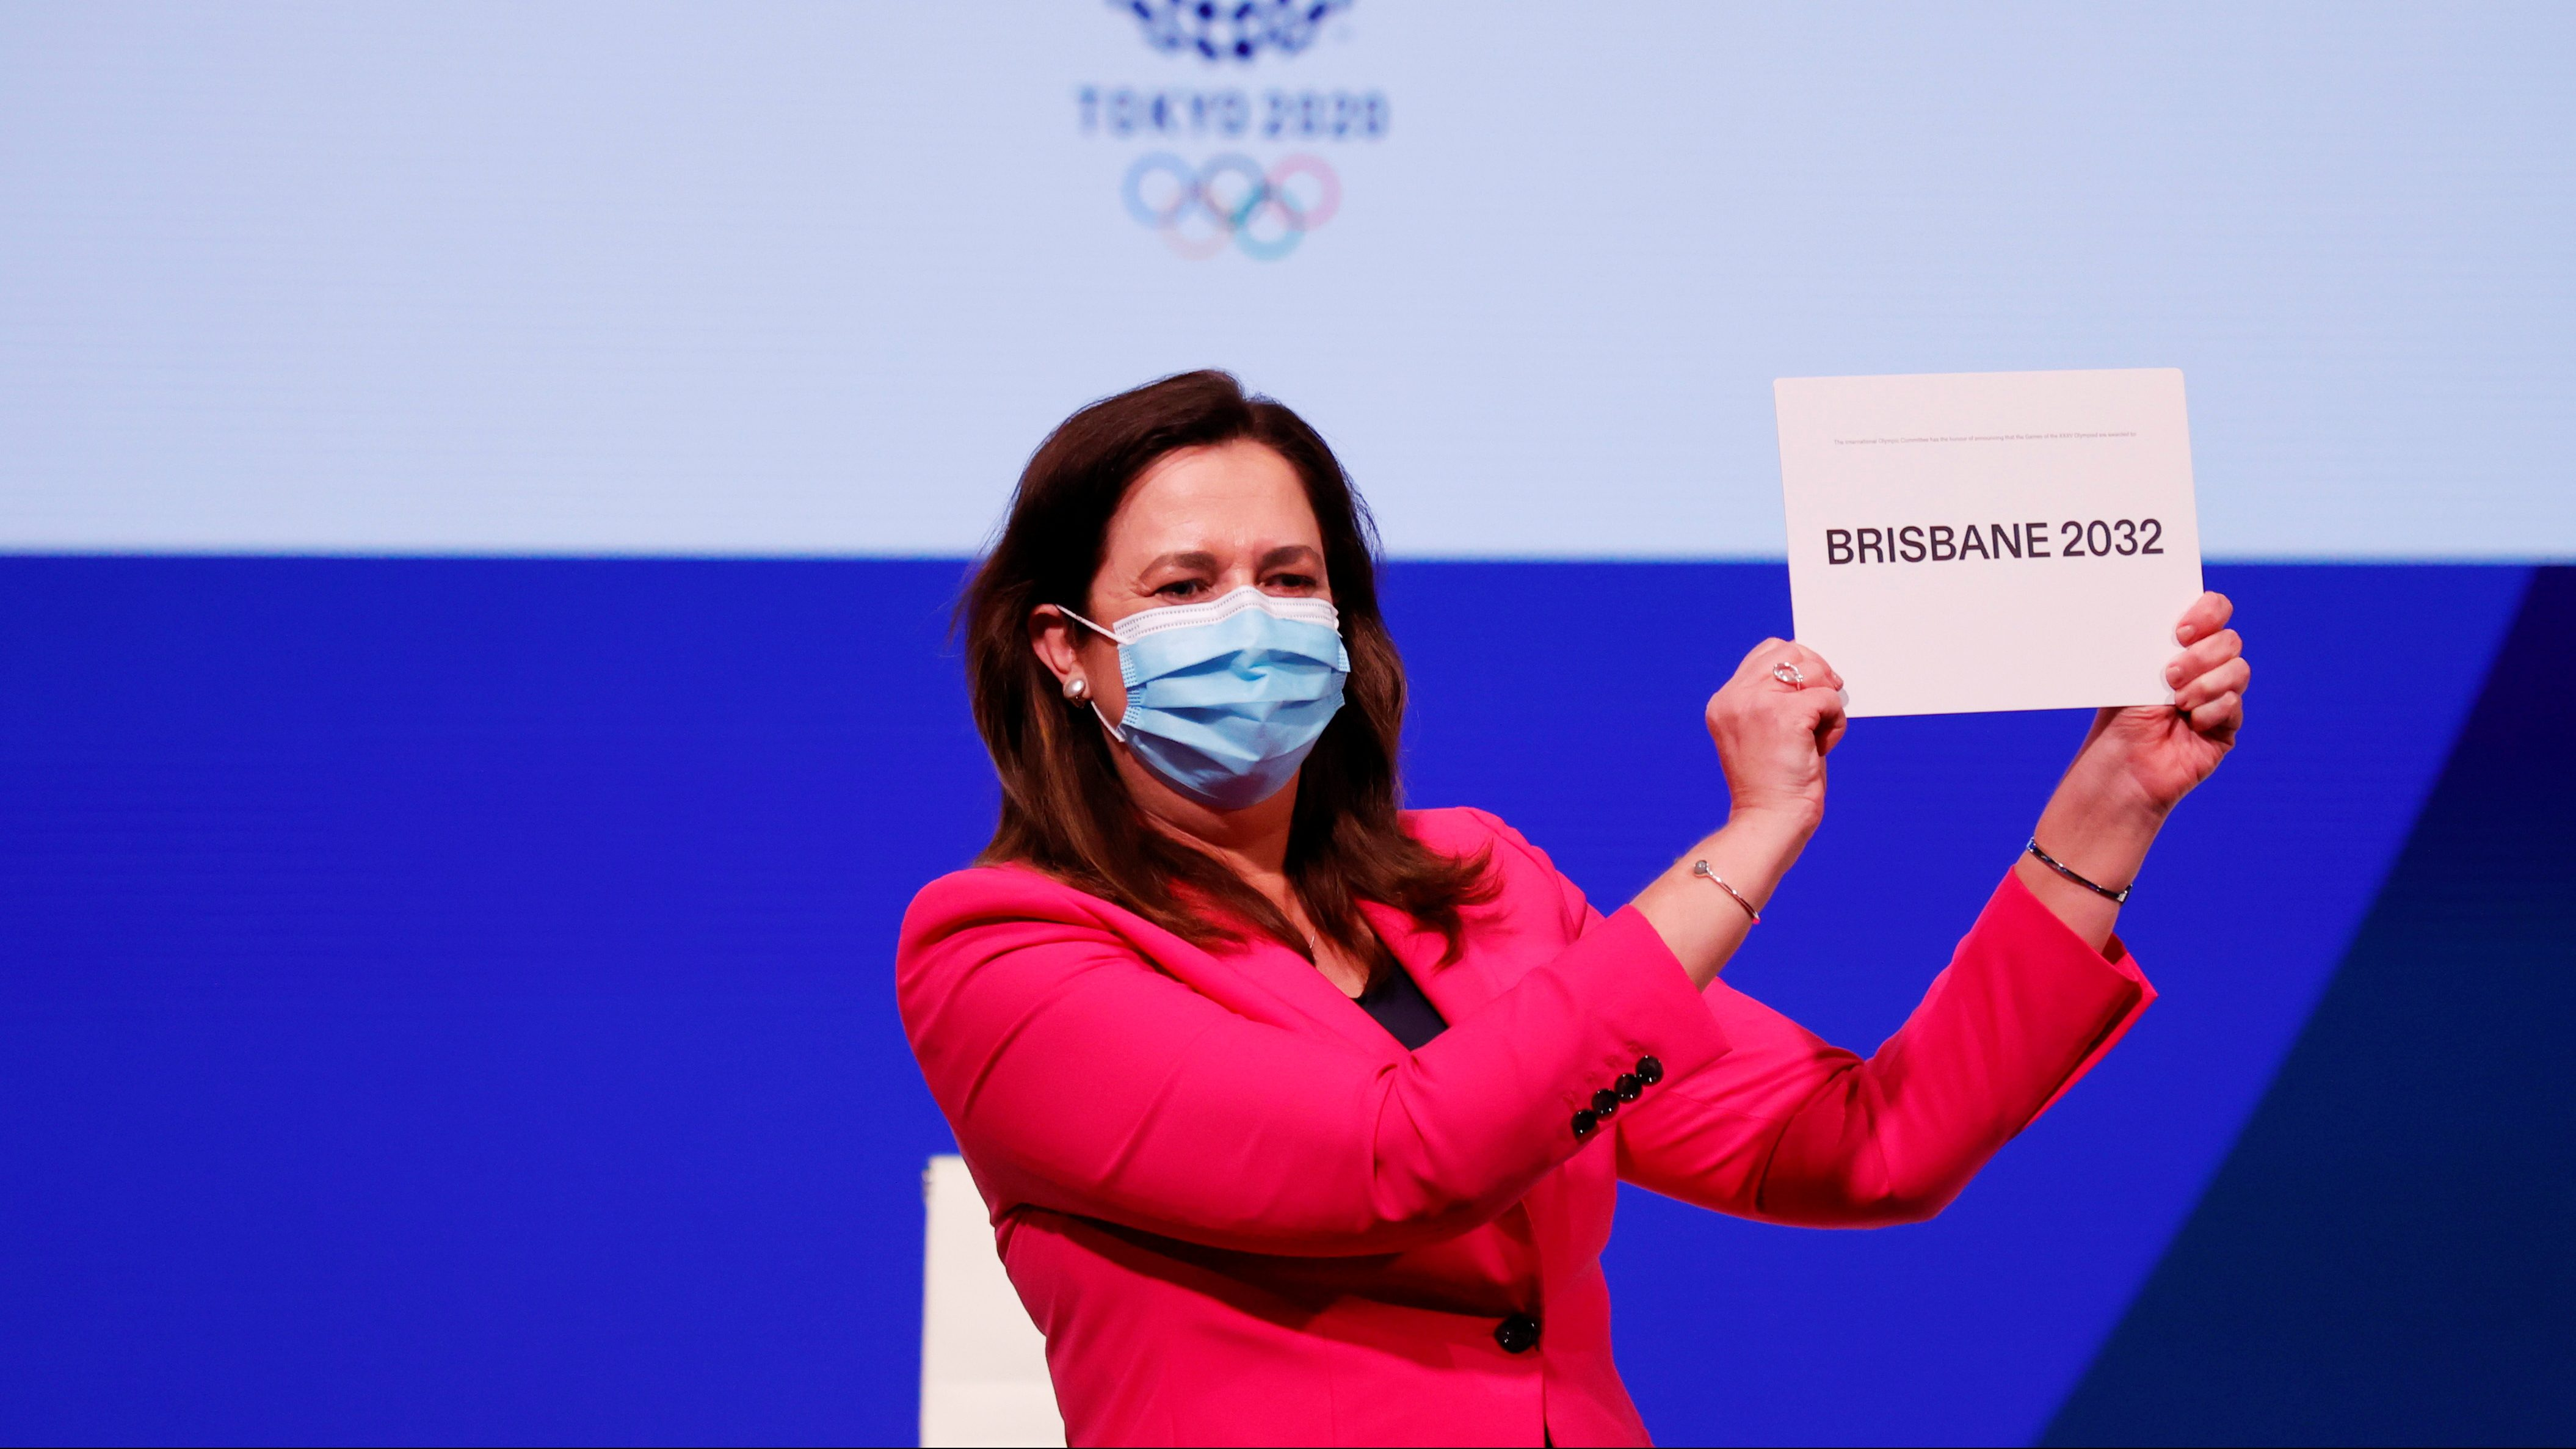 Brisbane 2032 is the first test of the Olympics' new host ...